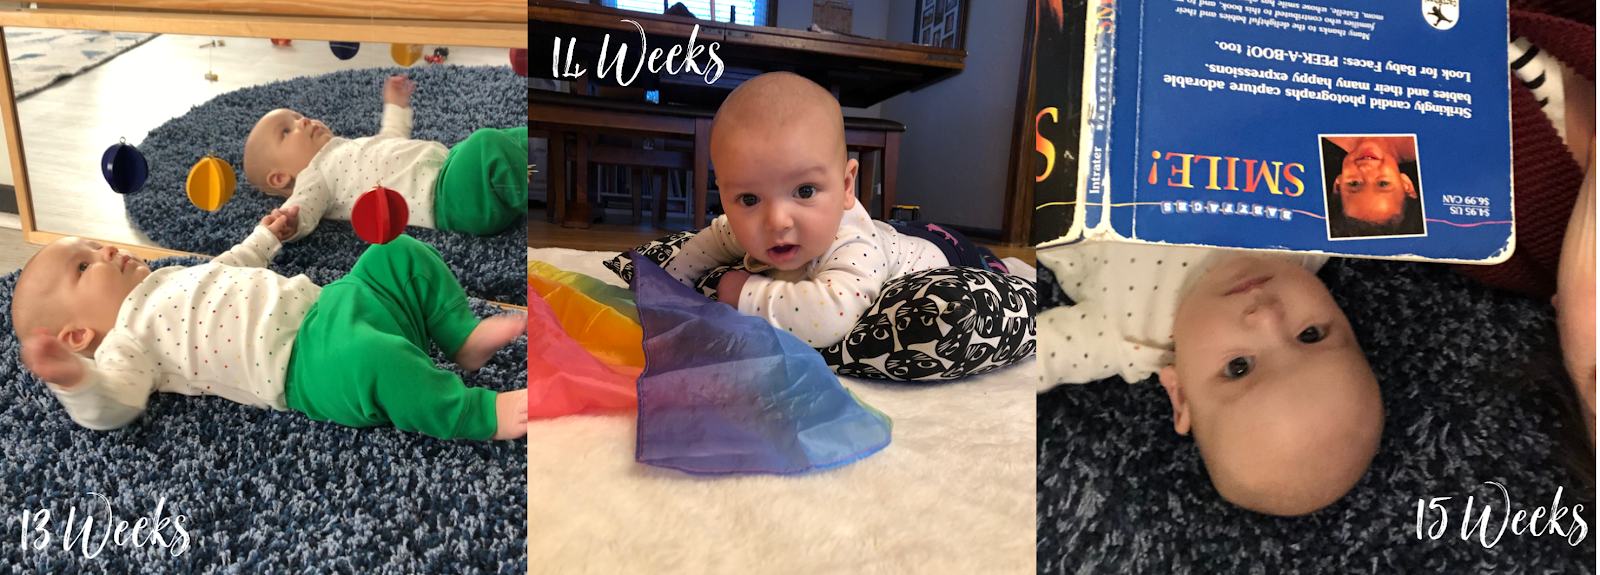 Montessori activities for young babies up to 24 weeks old. These simple activities are easy to keep babies happy and entertained.